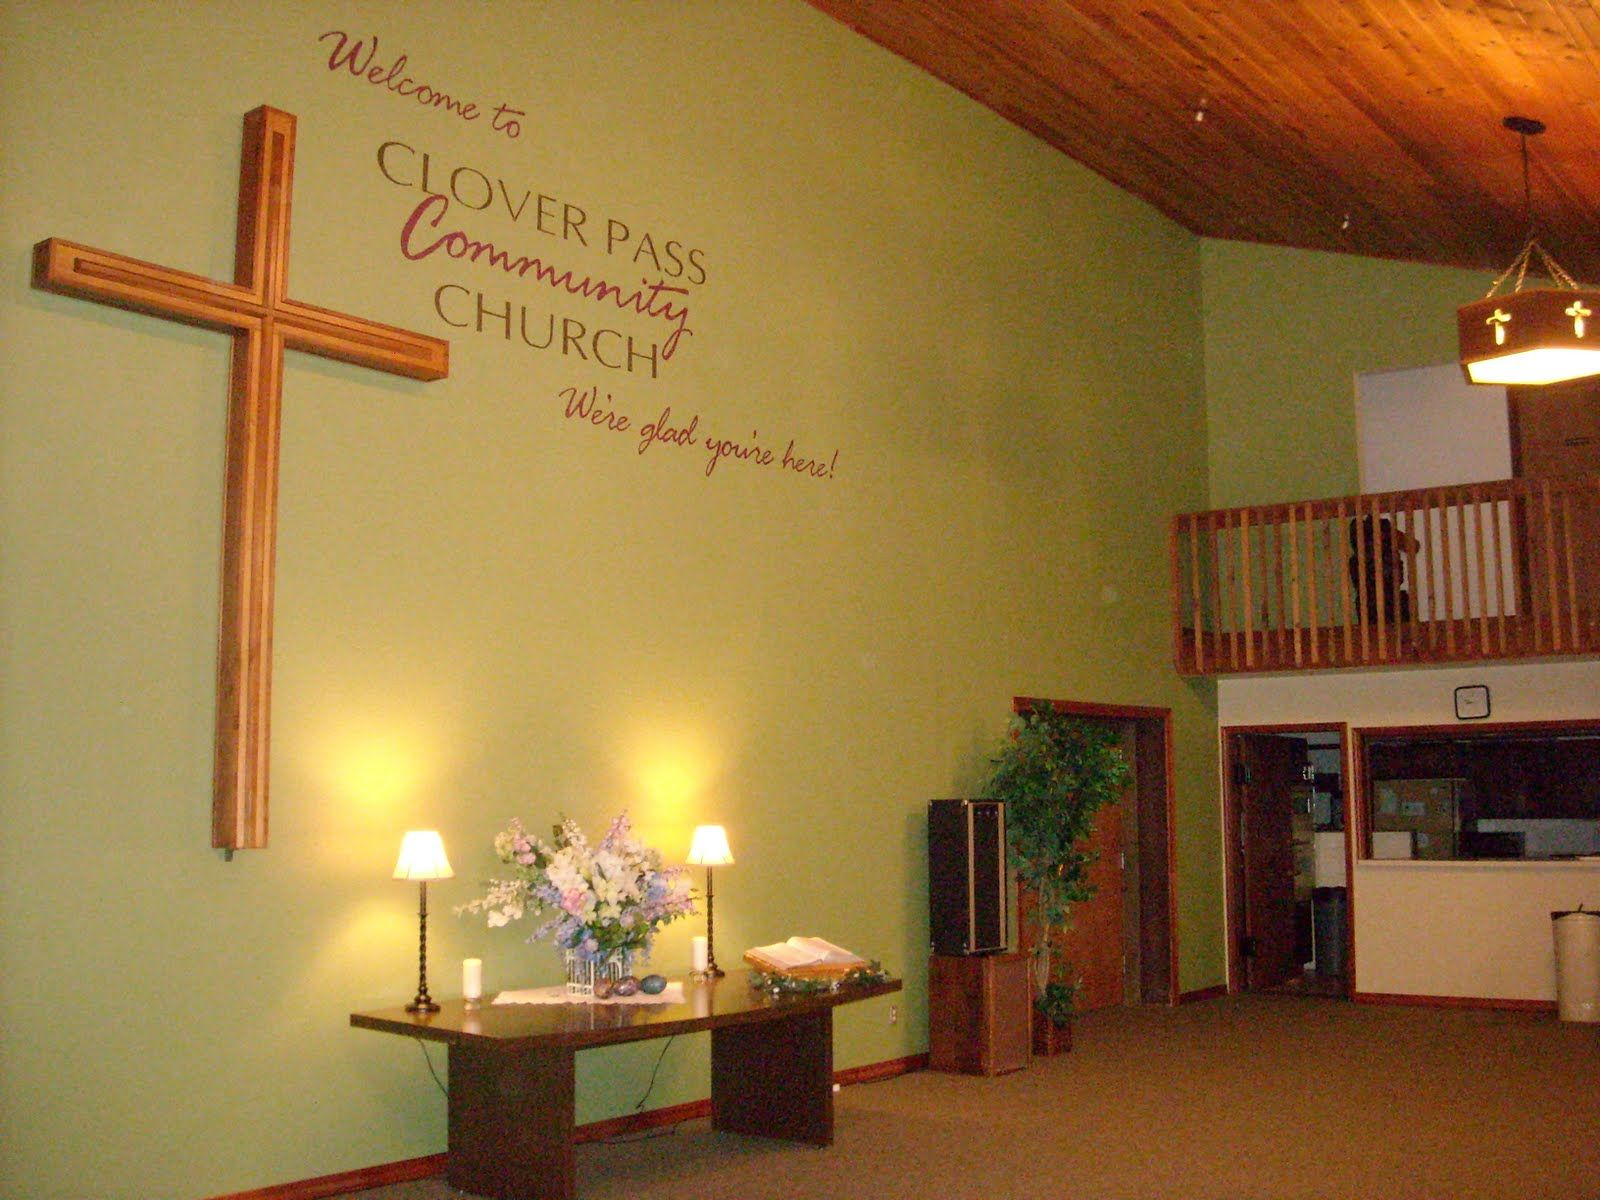 church foyer | Our church foyer was recently redone, and I thought ...